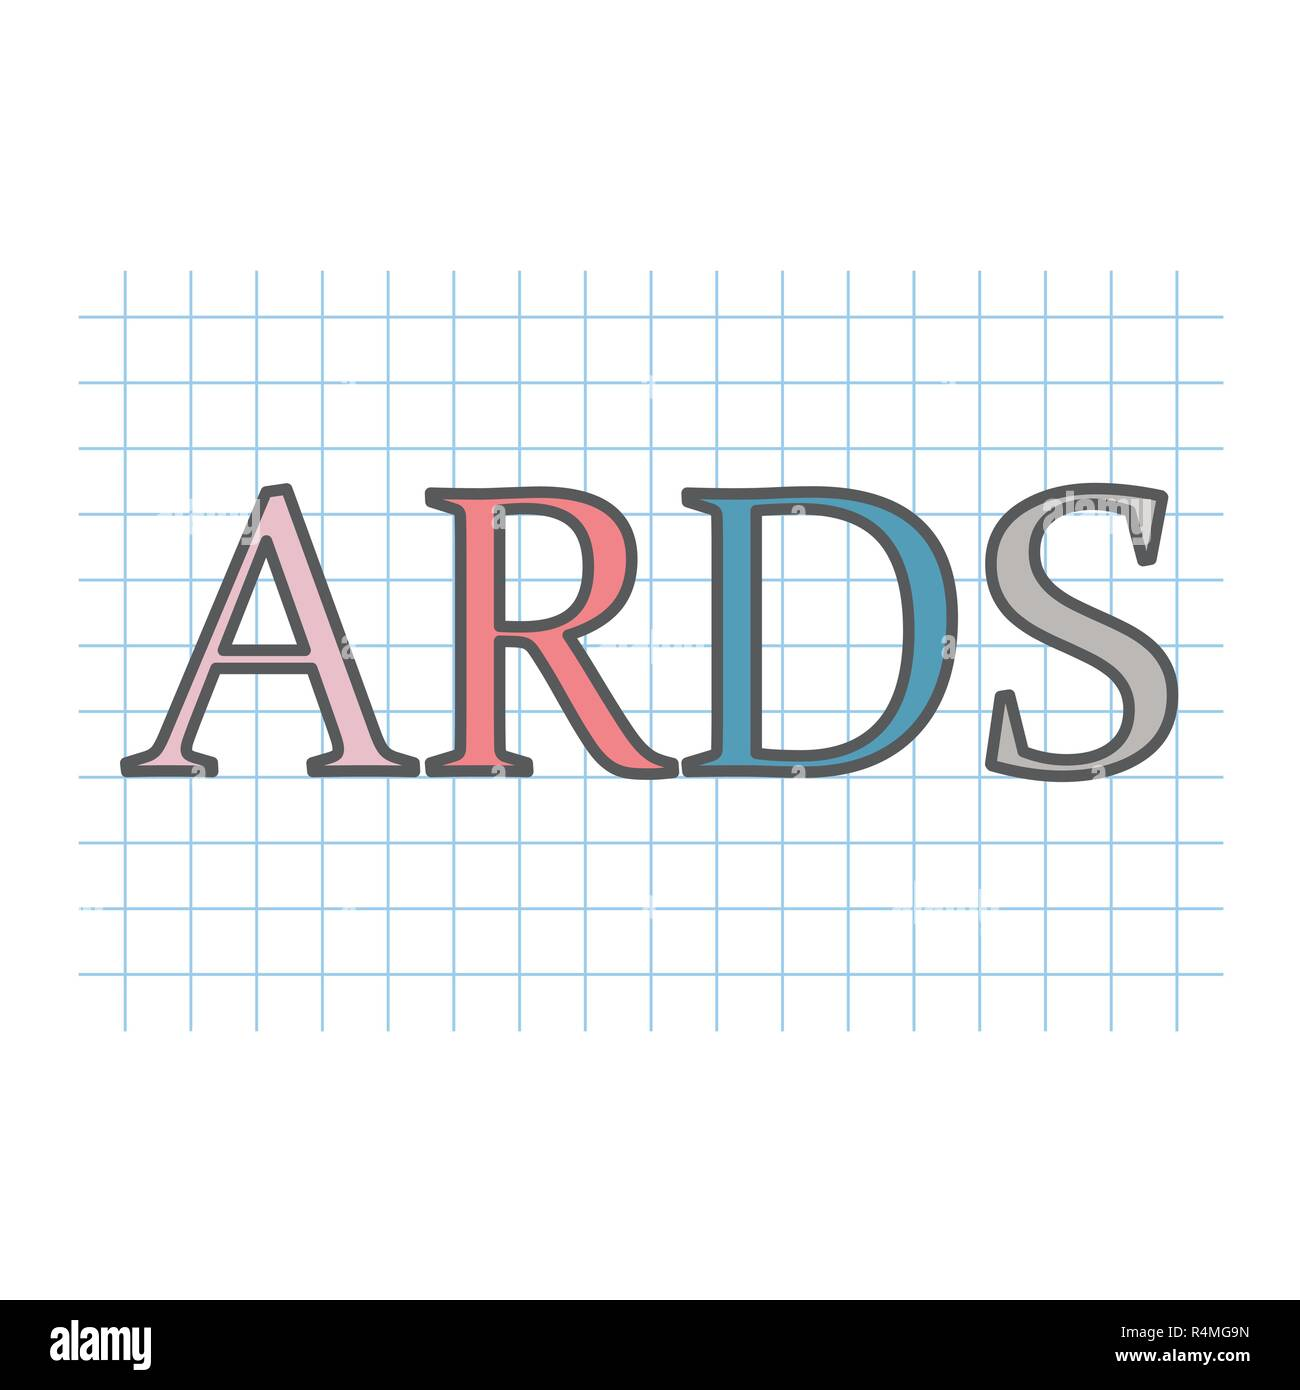 ARDS (Acute Respiratory Distress Syndrome) acronym written on checkered paper-vector illustration - Stock Vector